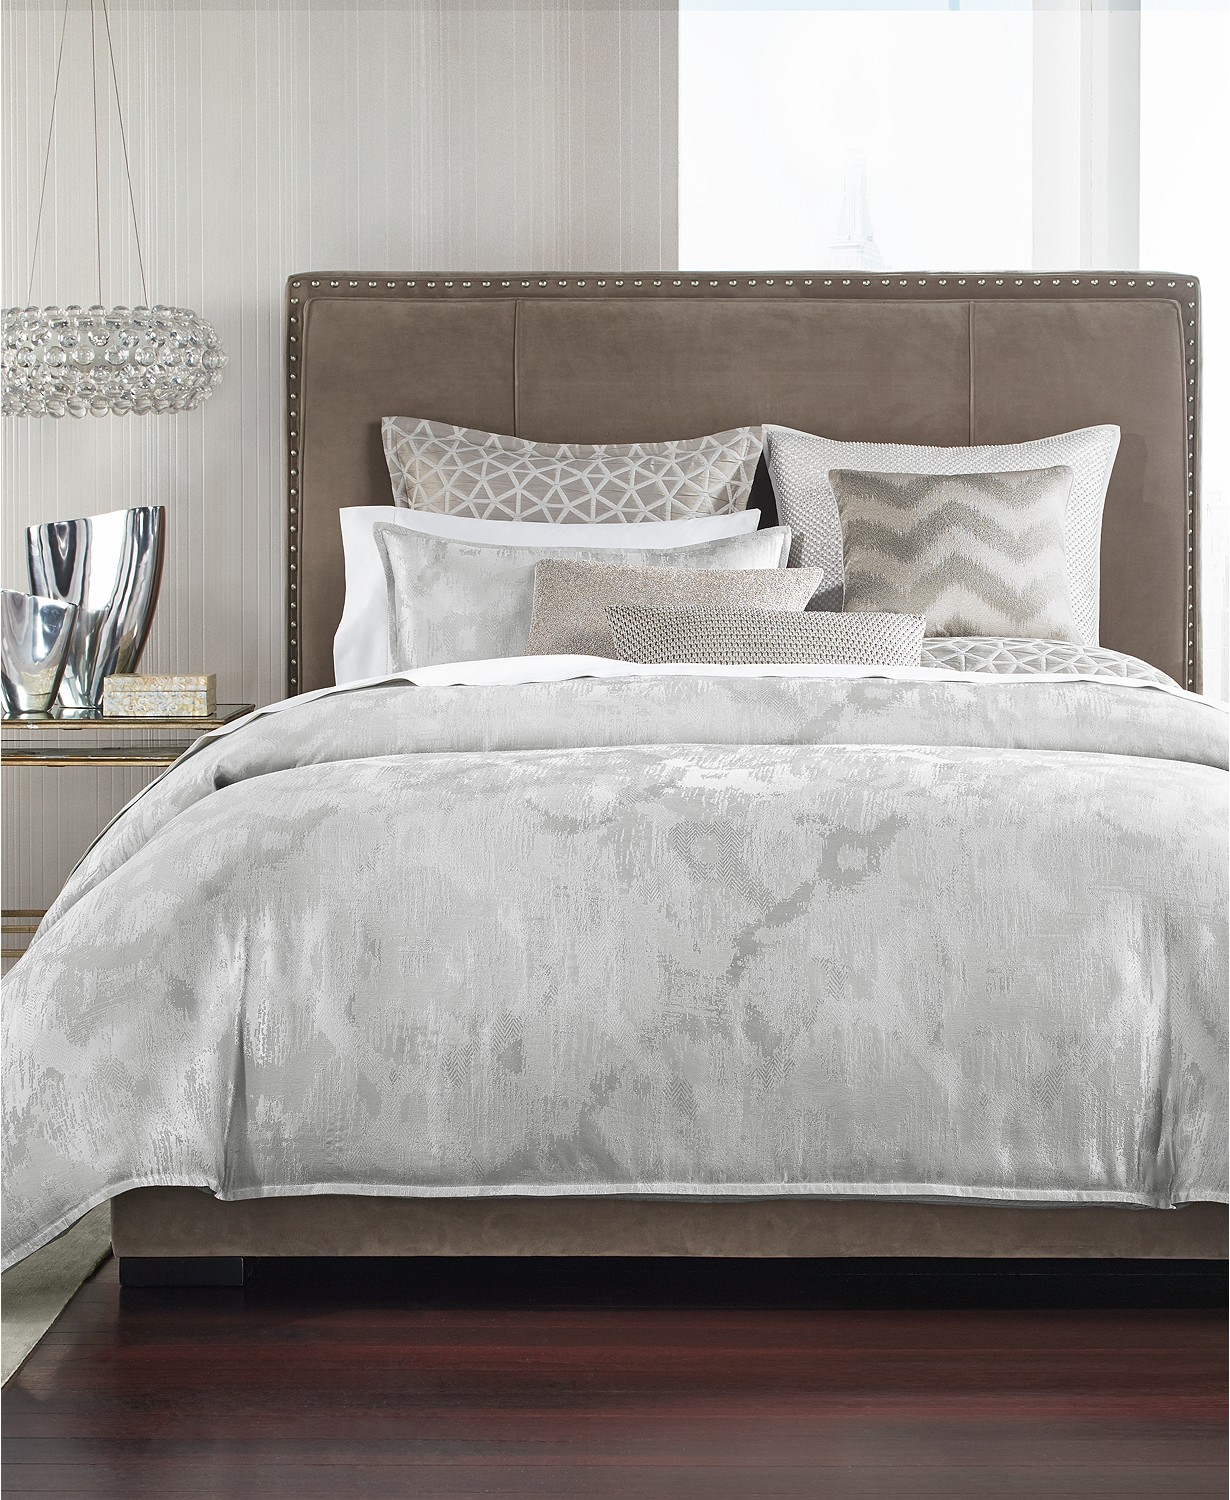 MACYS VIP SALE SPECIAL! LUXURY HOTEL BEDDING DUVETS AND MORE NOW 60% OFF!